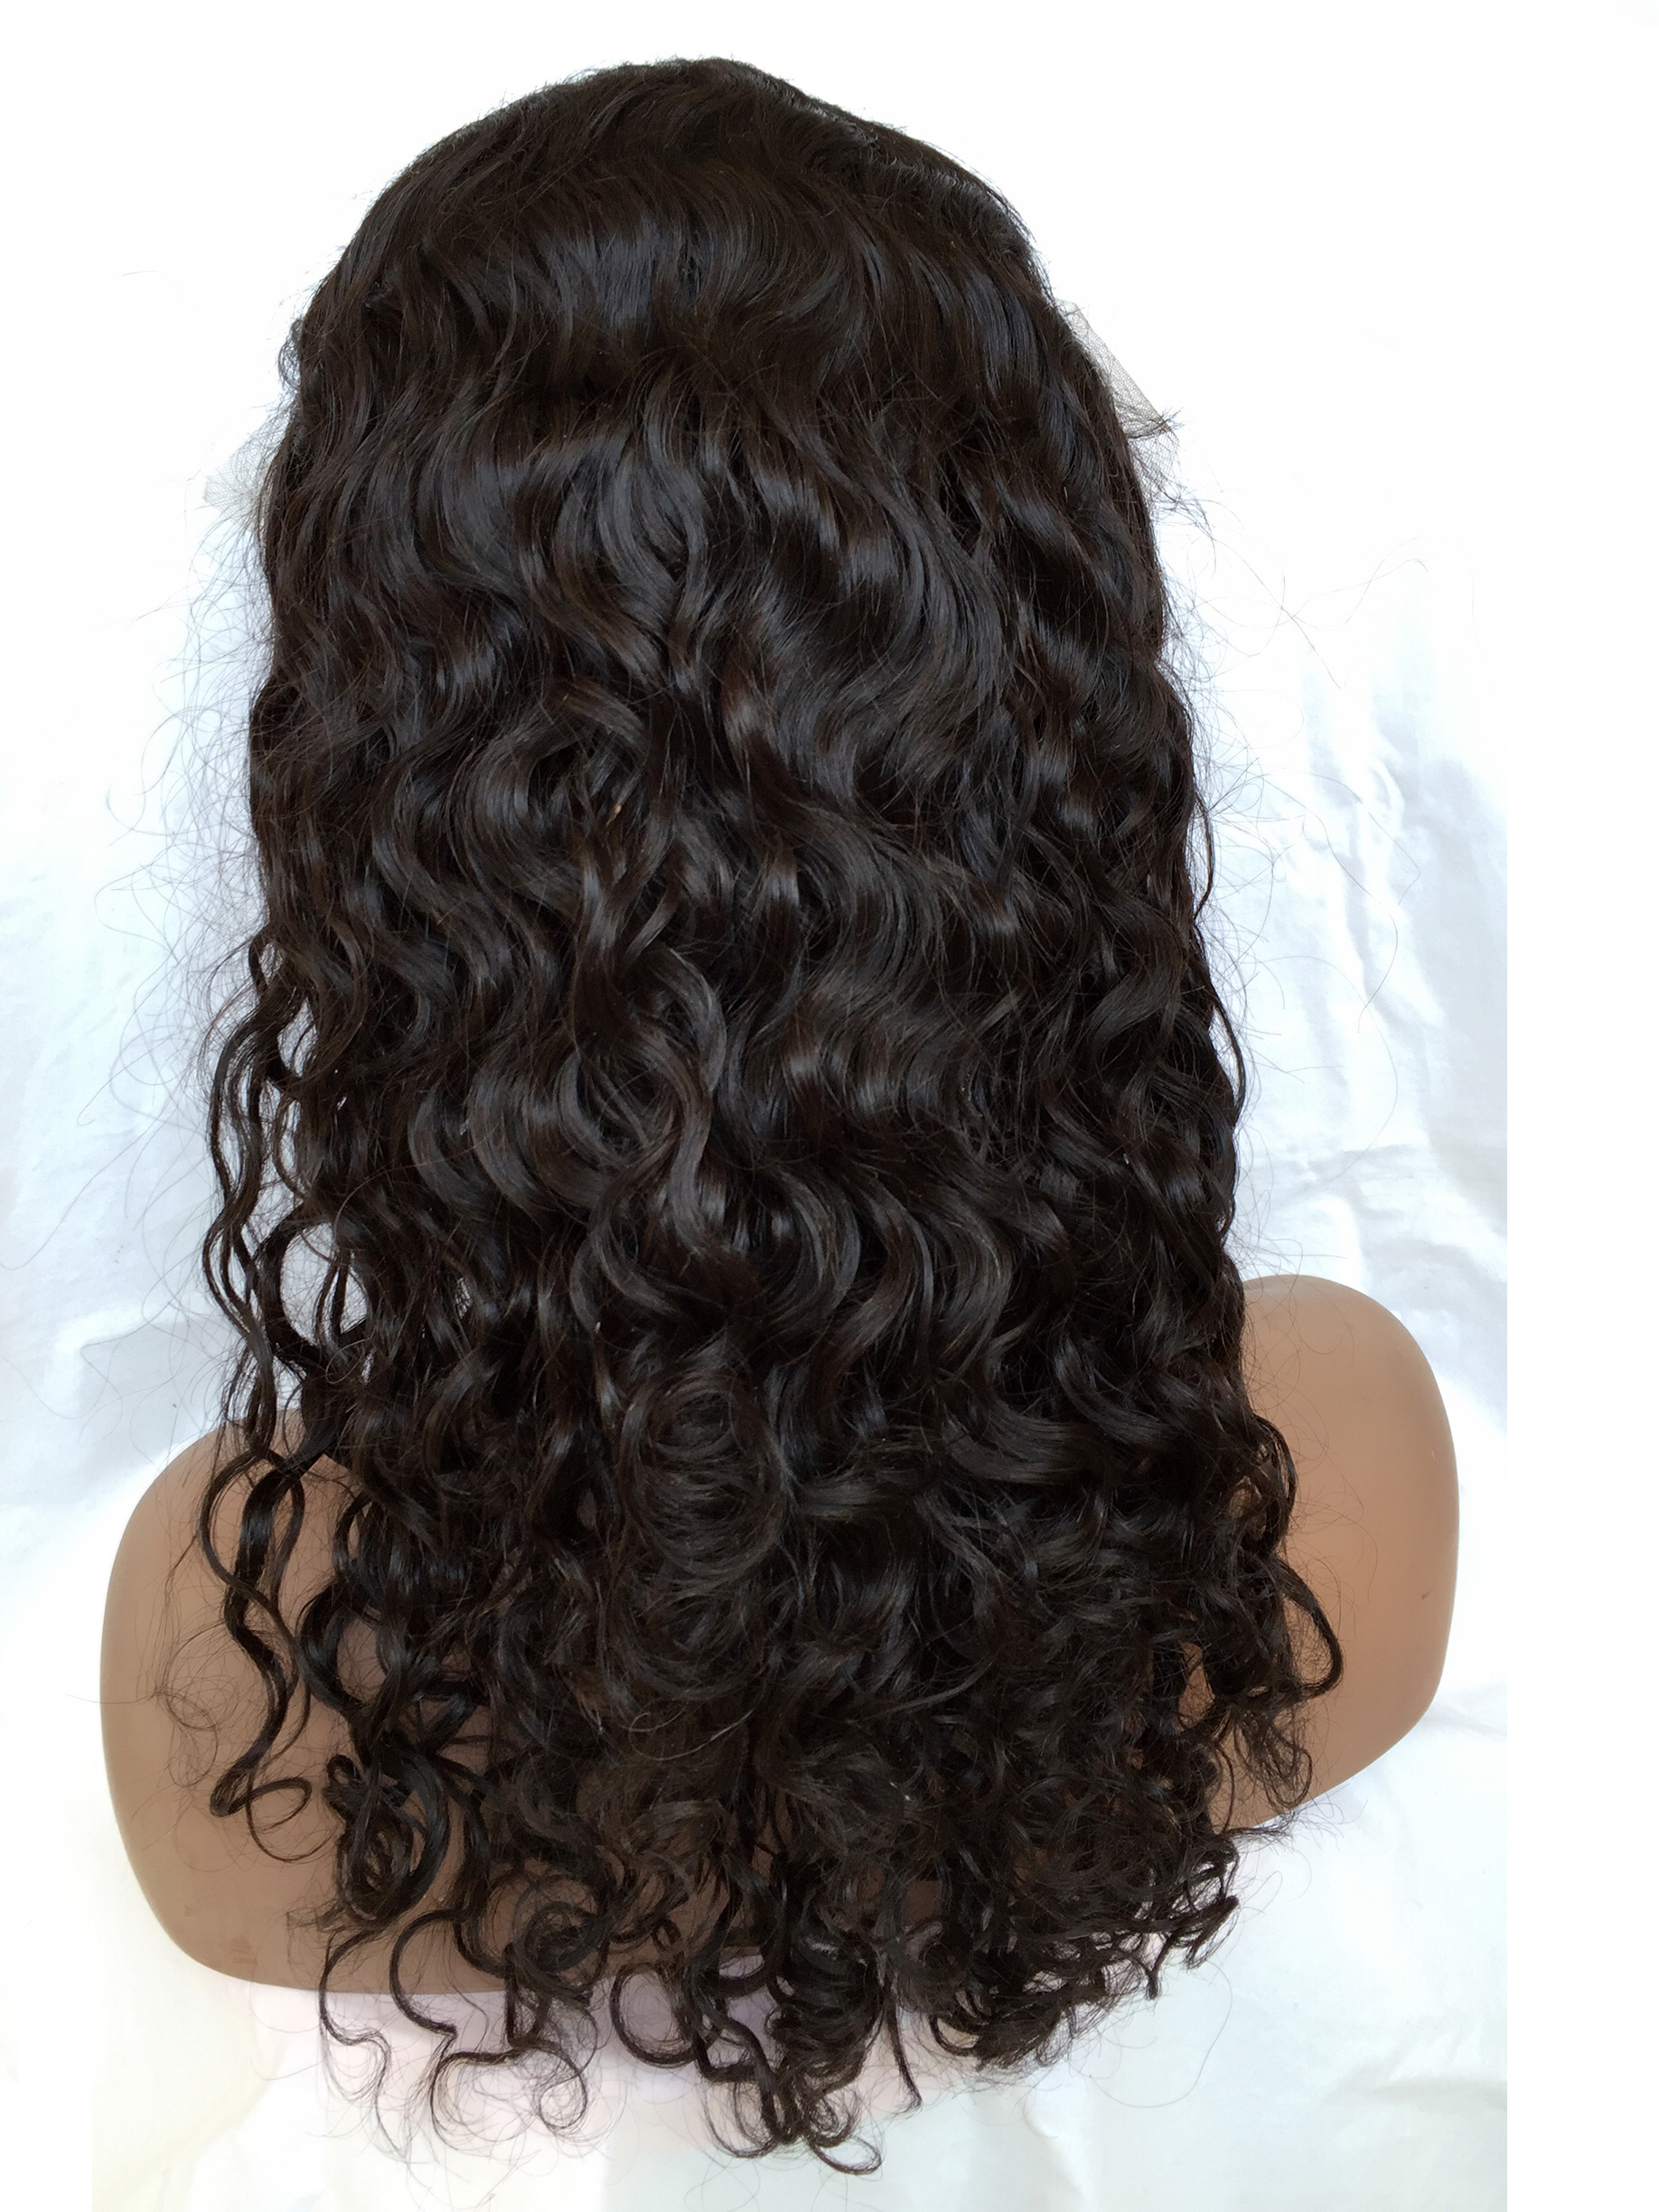 Risk seem glueless full lace wigs for black women pity, that